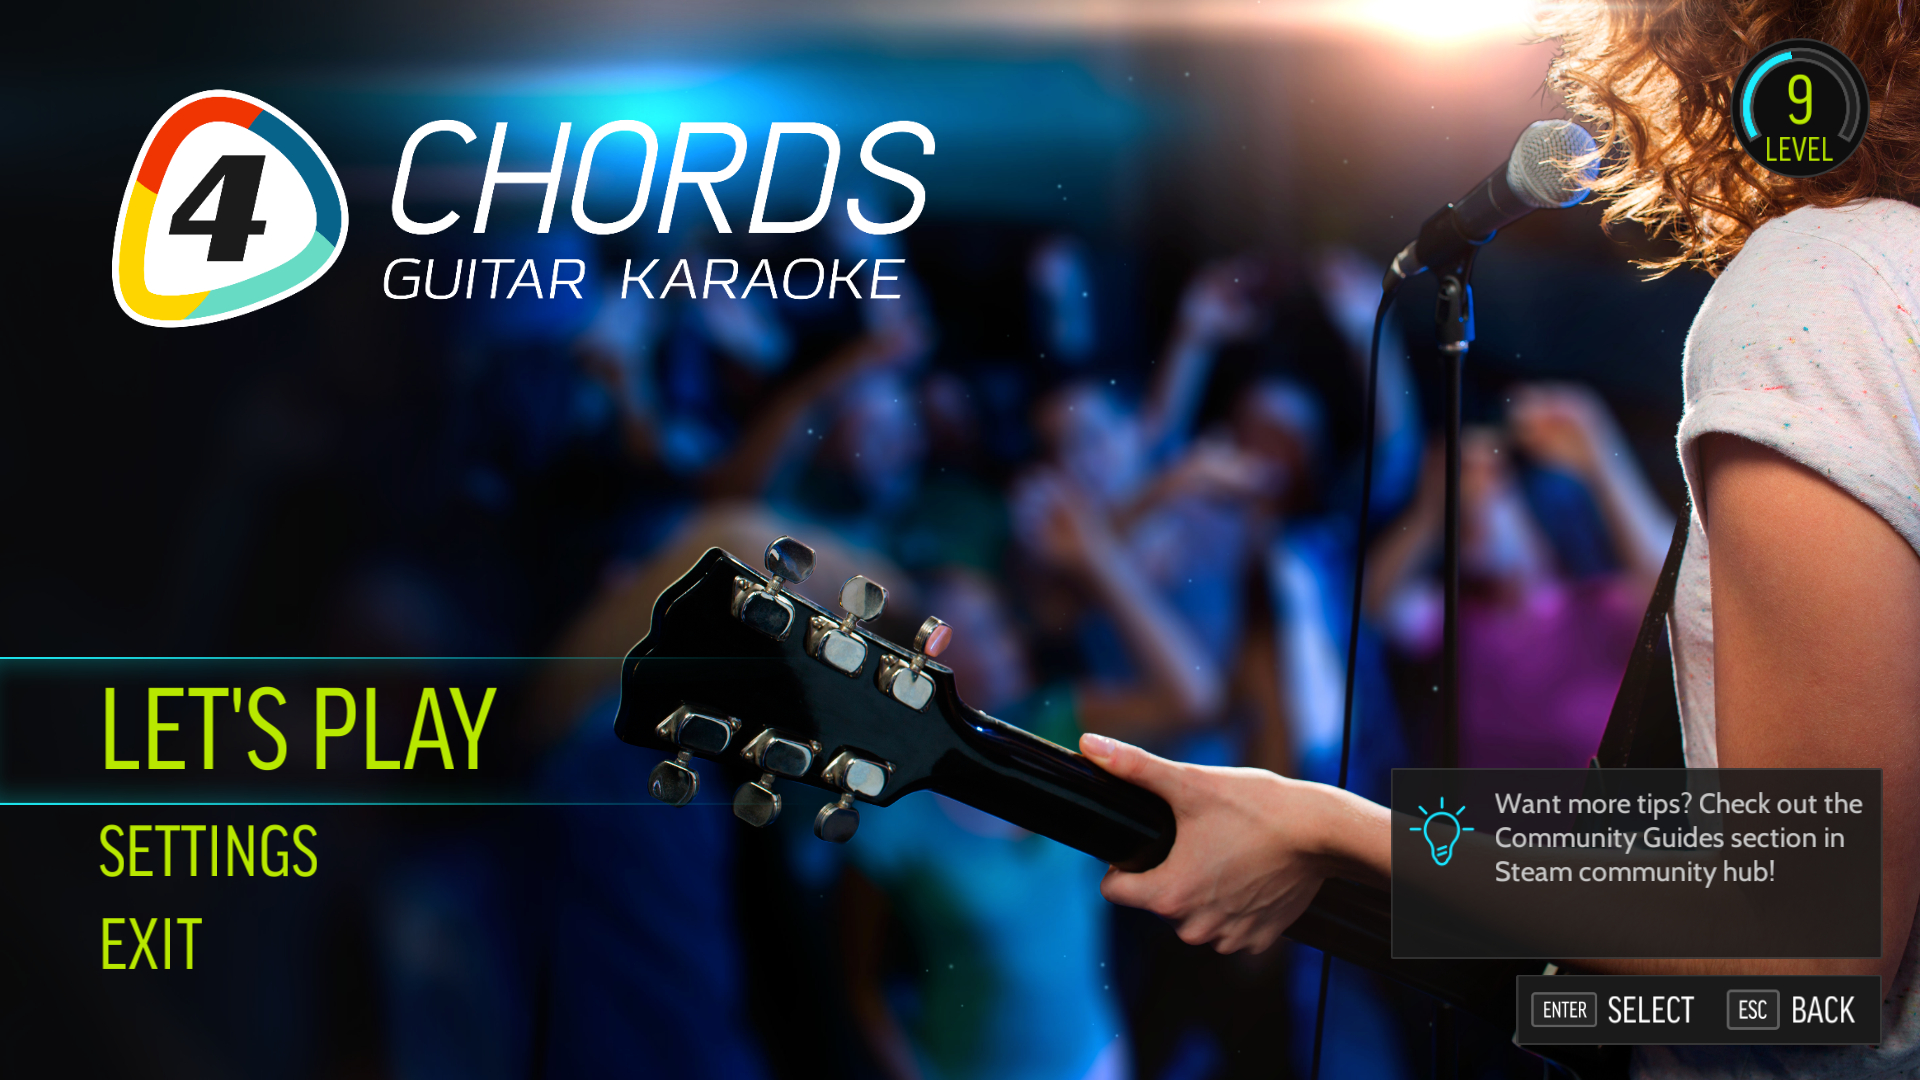 Fourchords Guitar Karaoke Seether Song Pack On Steam